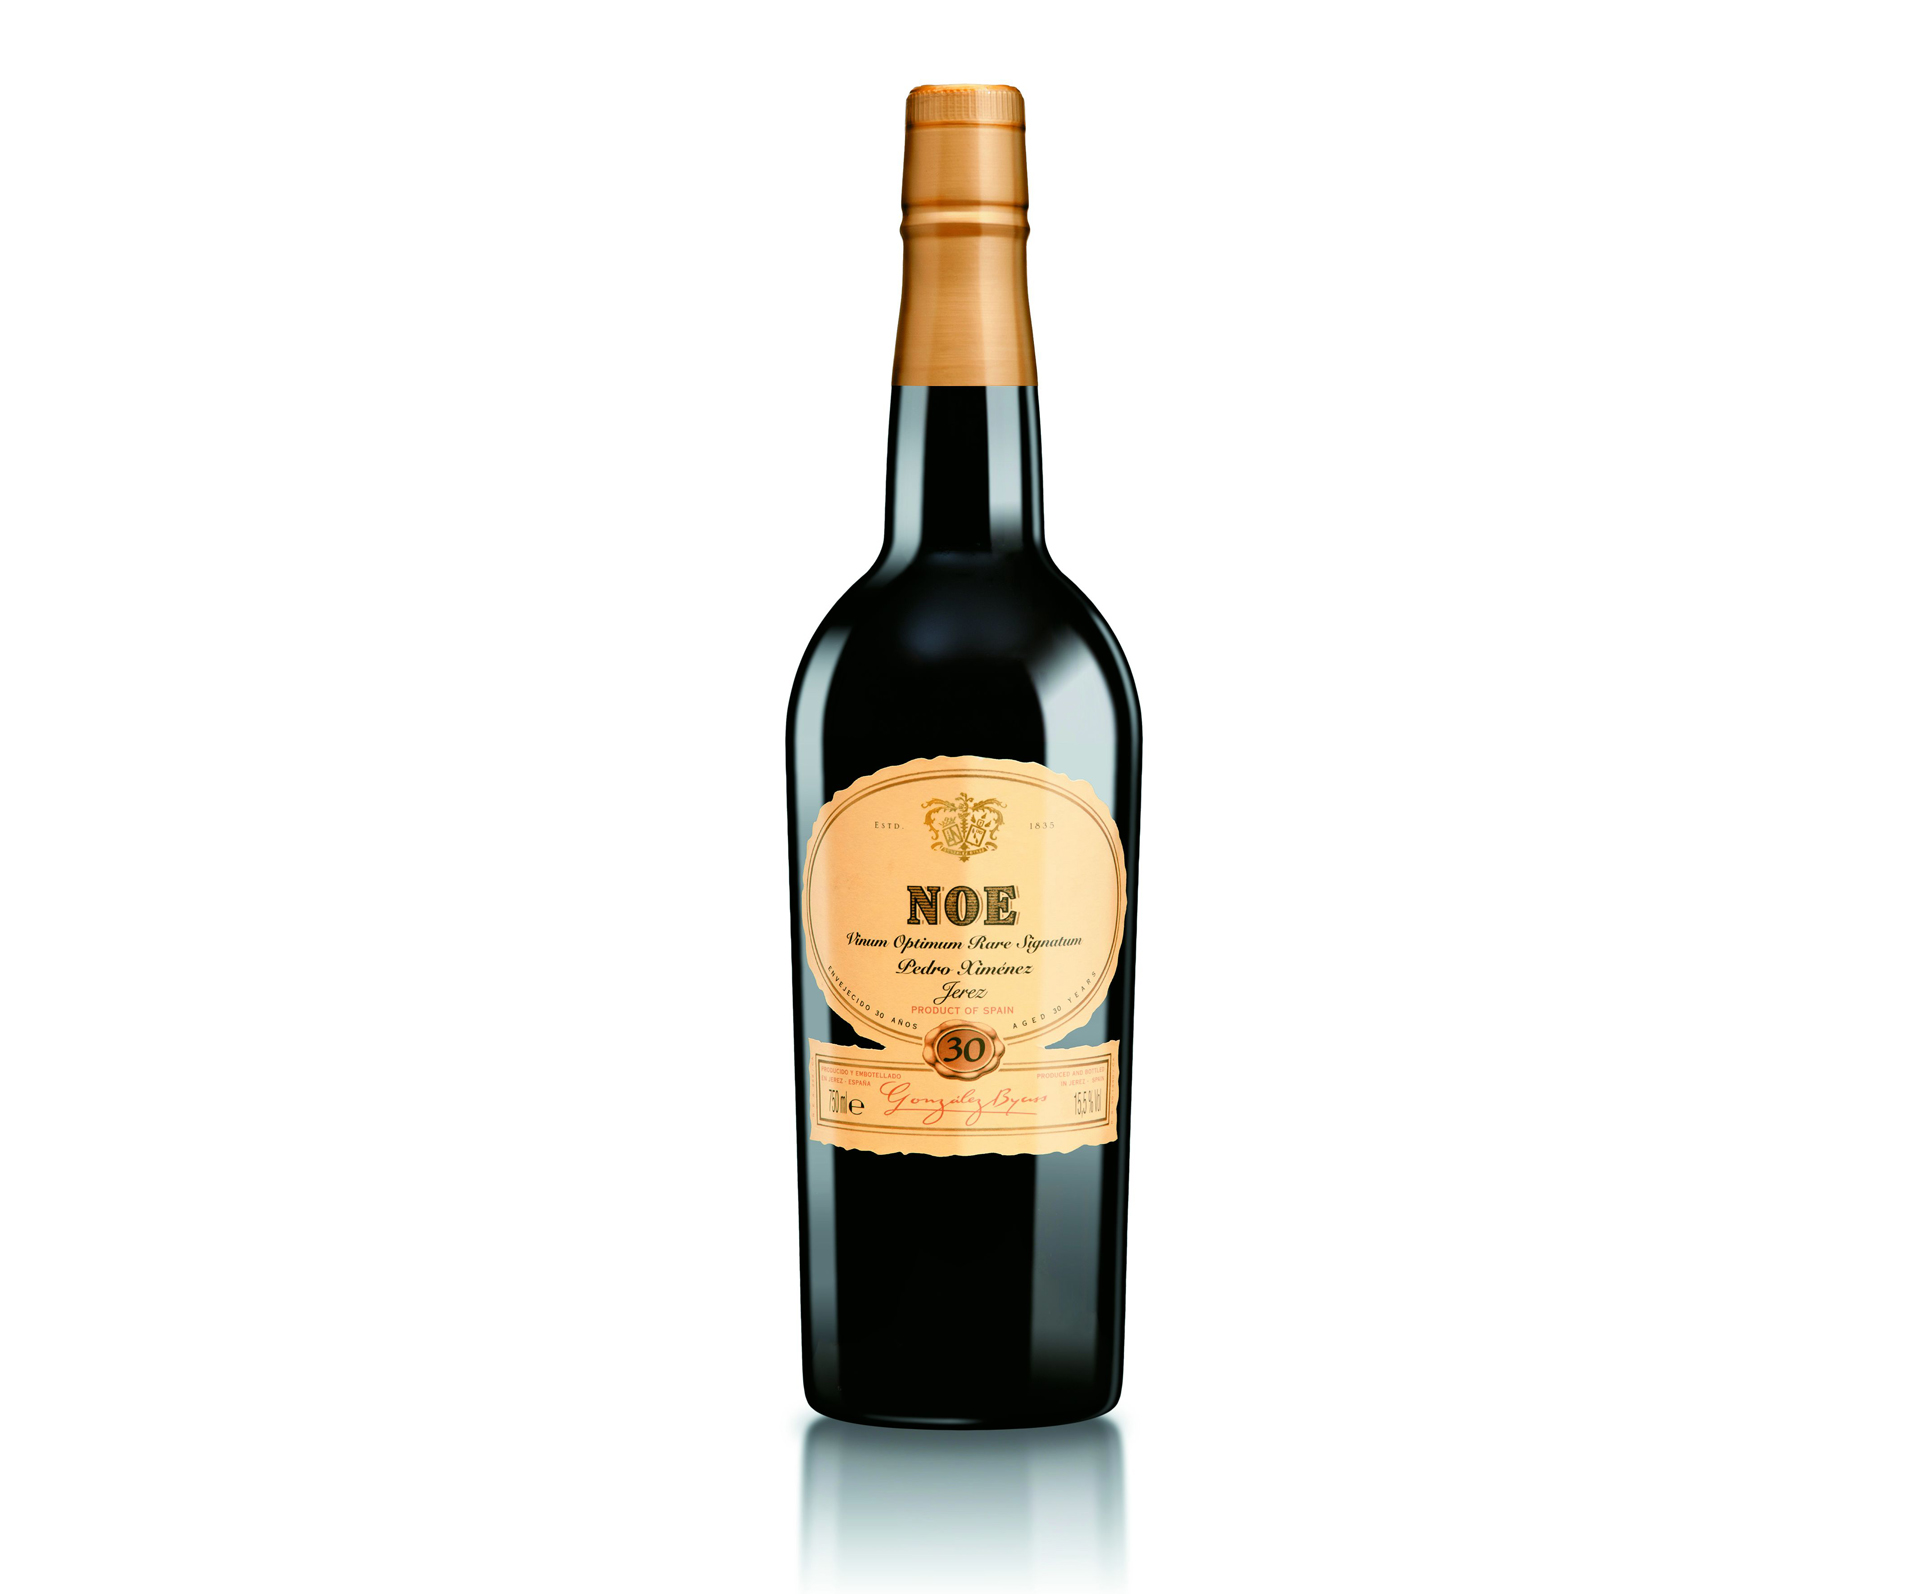 Gonzalez Byass Noe, 30 Year Old Pedro Ximenez Sherry, Spain